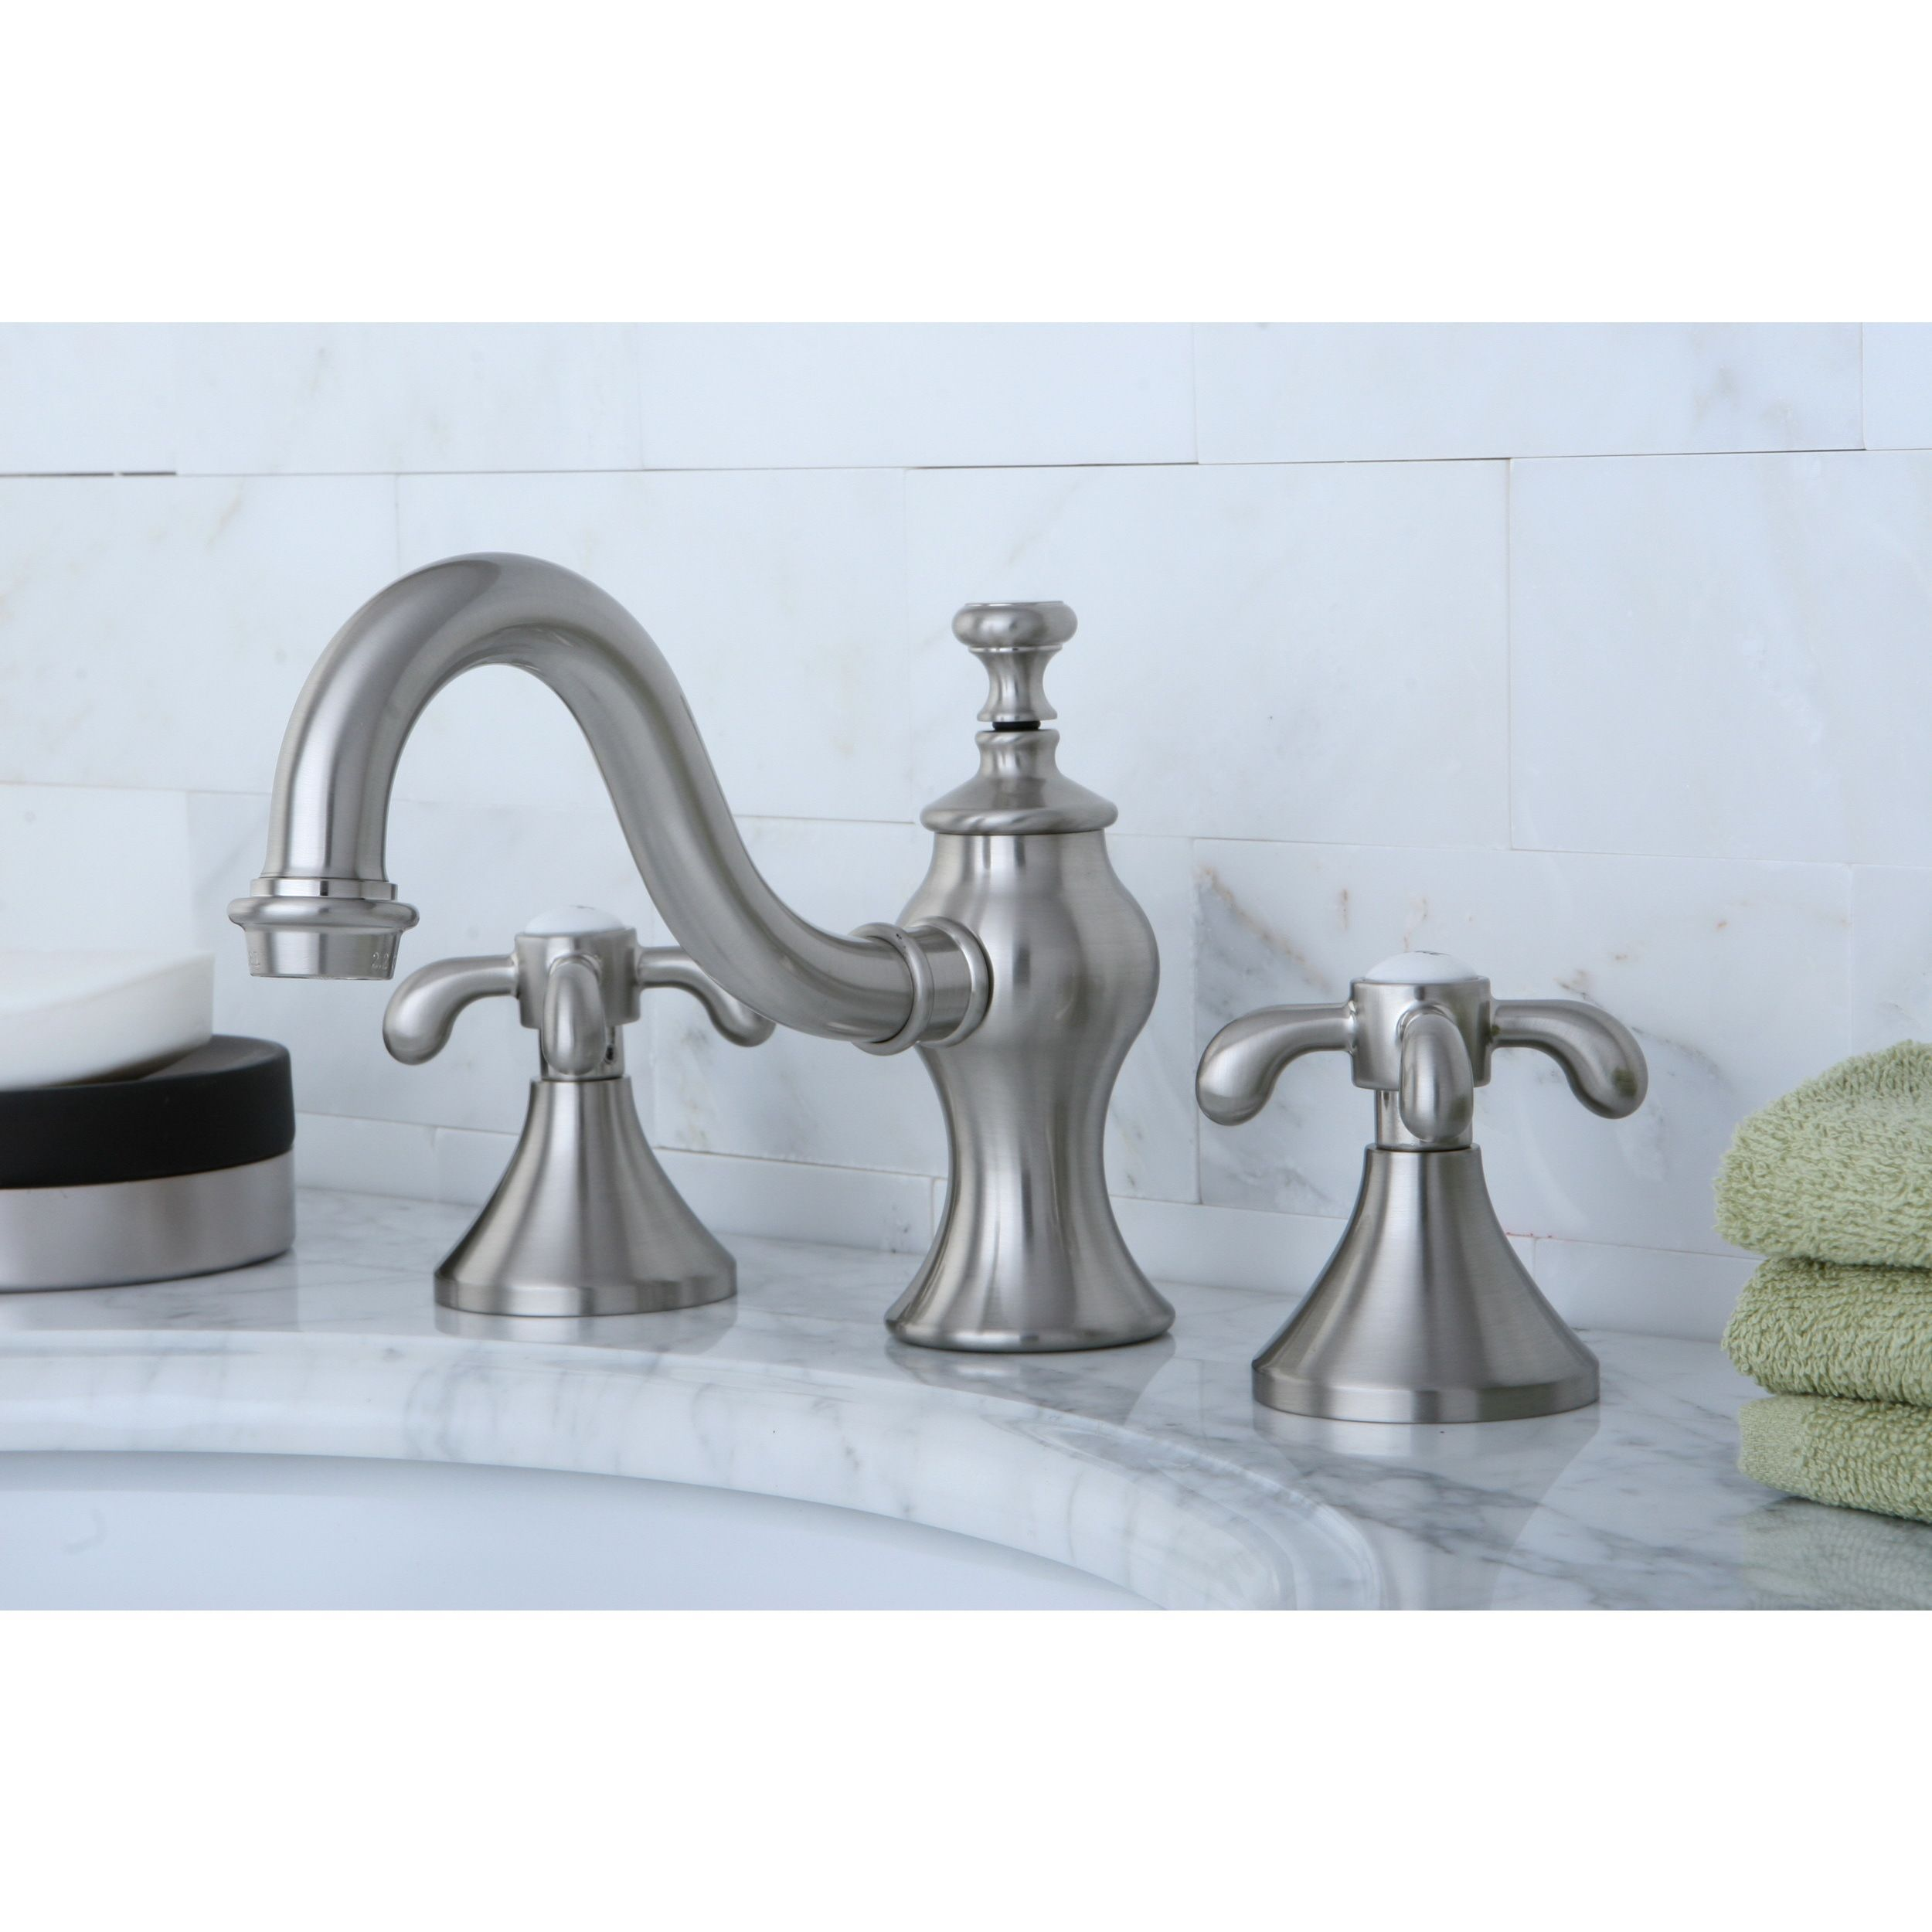 Modern Discount Faucets Online Picture Collection - Bathtub Ideas ...